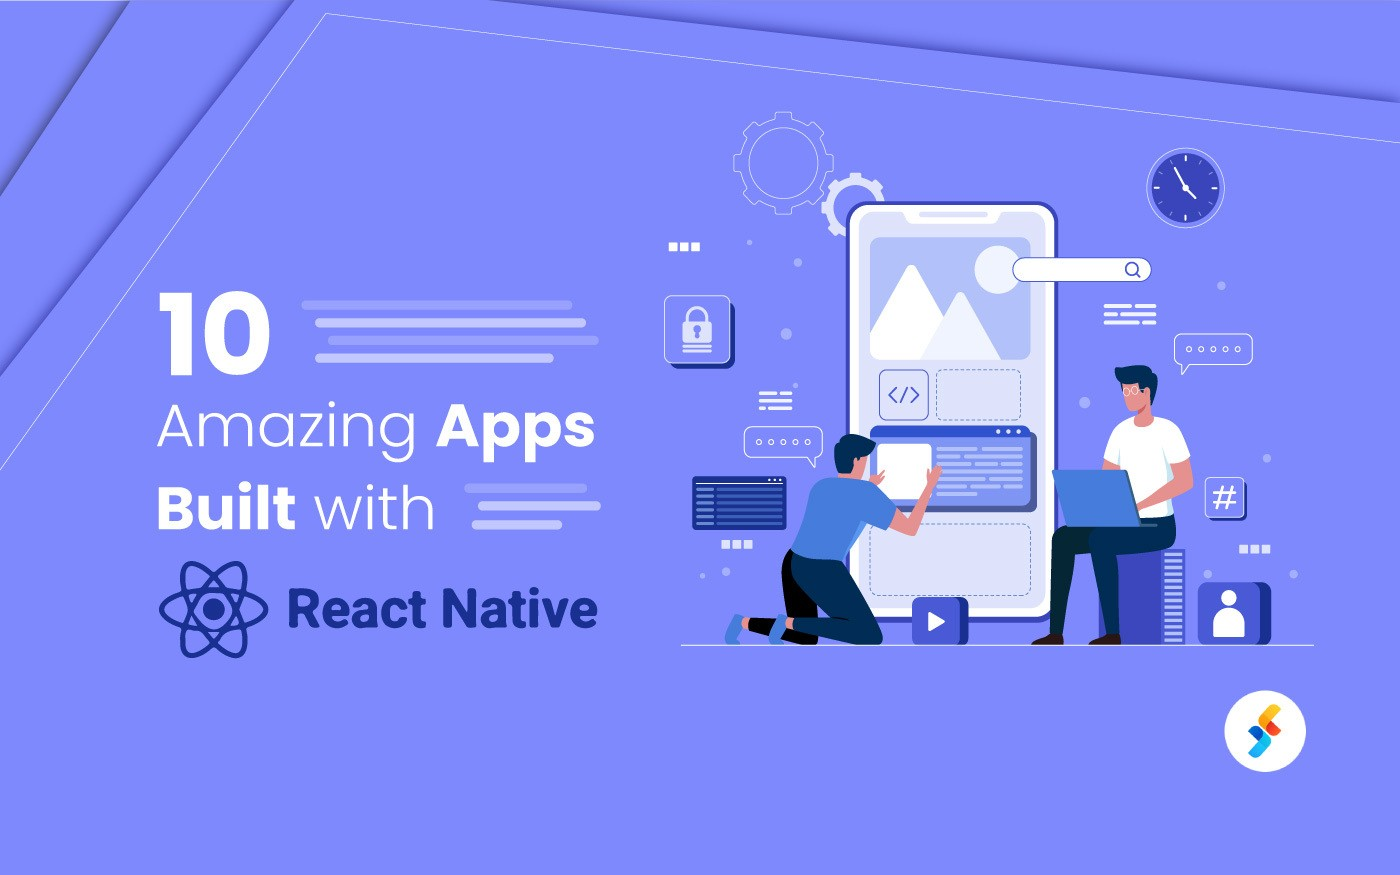 Top 10 Amazing Apps Built with React Native